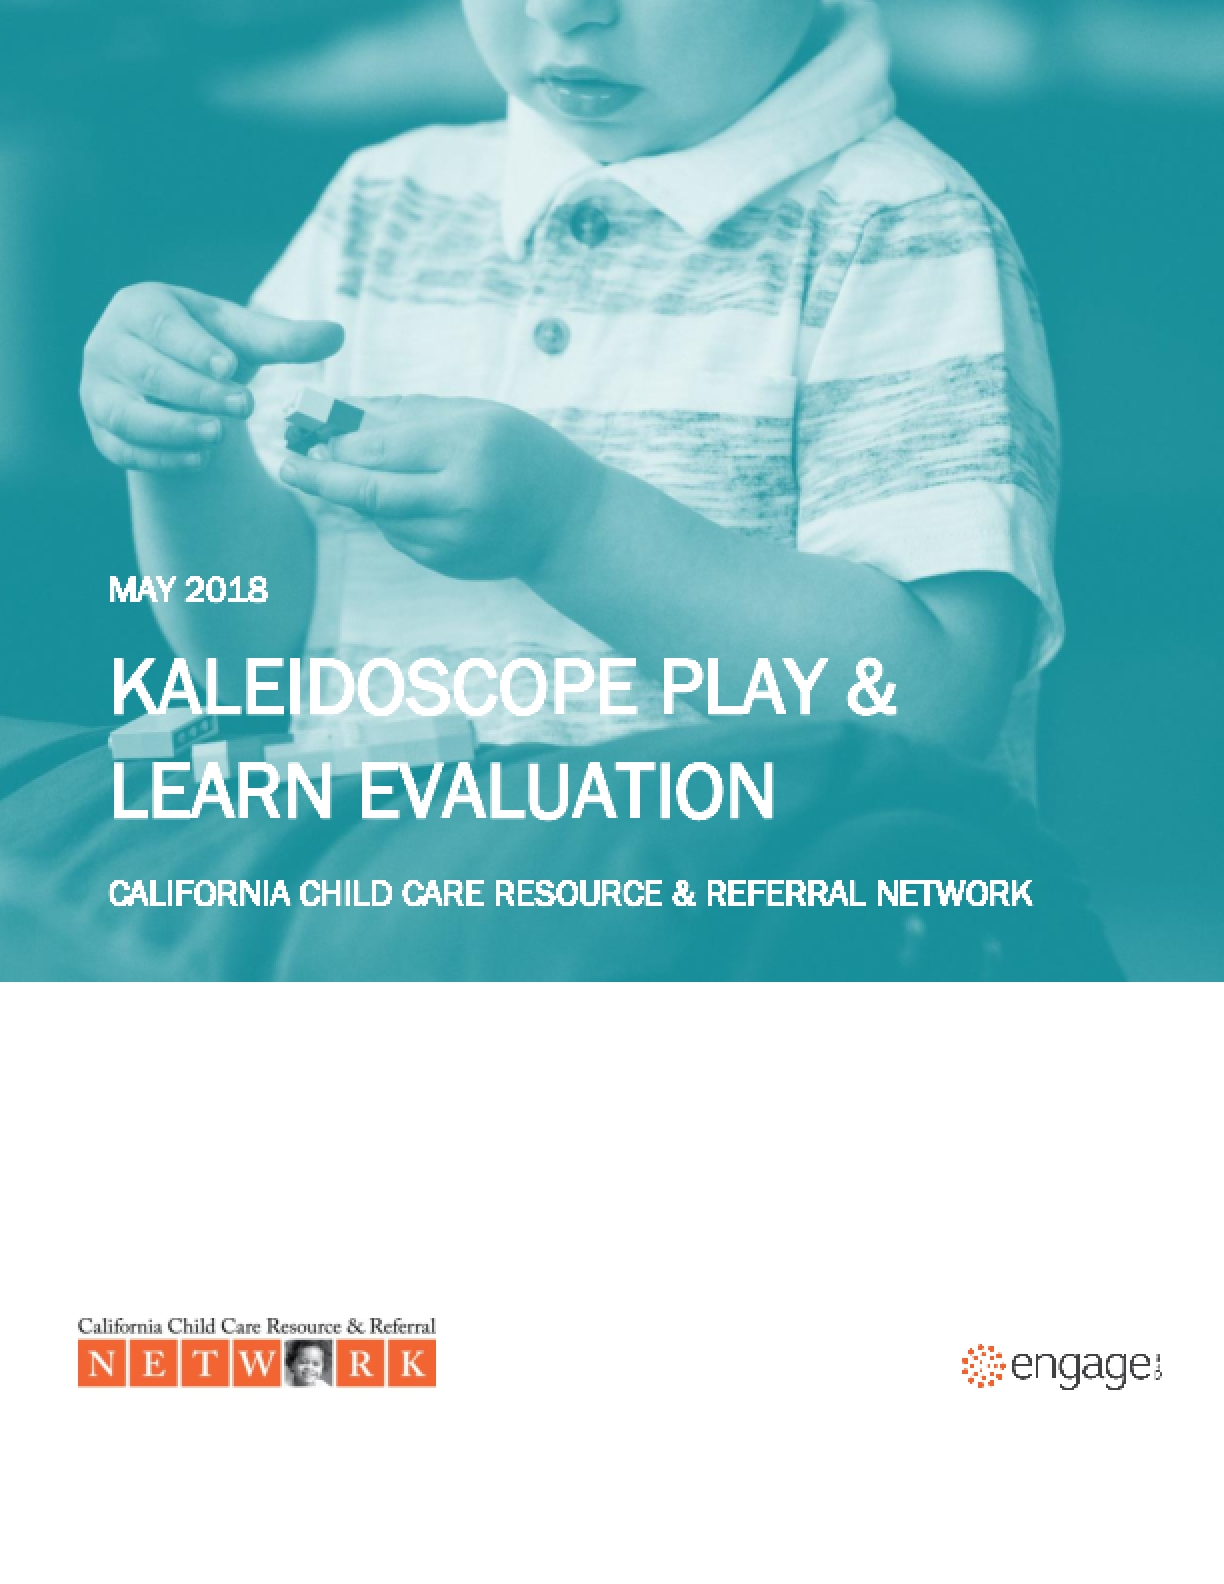 Kaleidoscope Play & Learn Evaluation